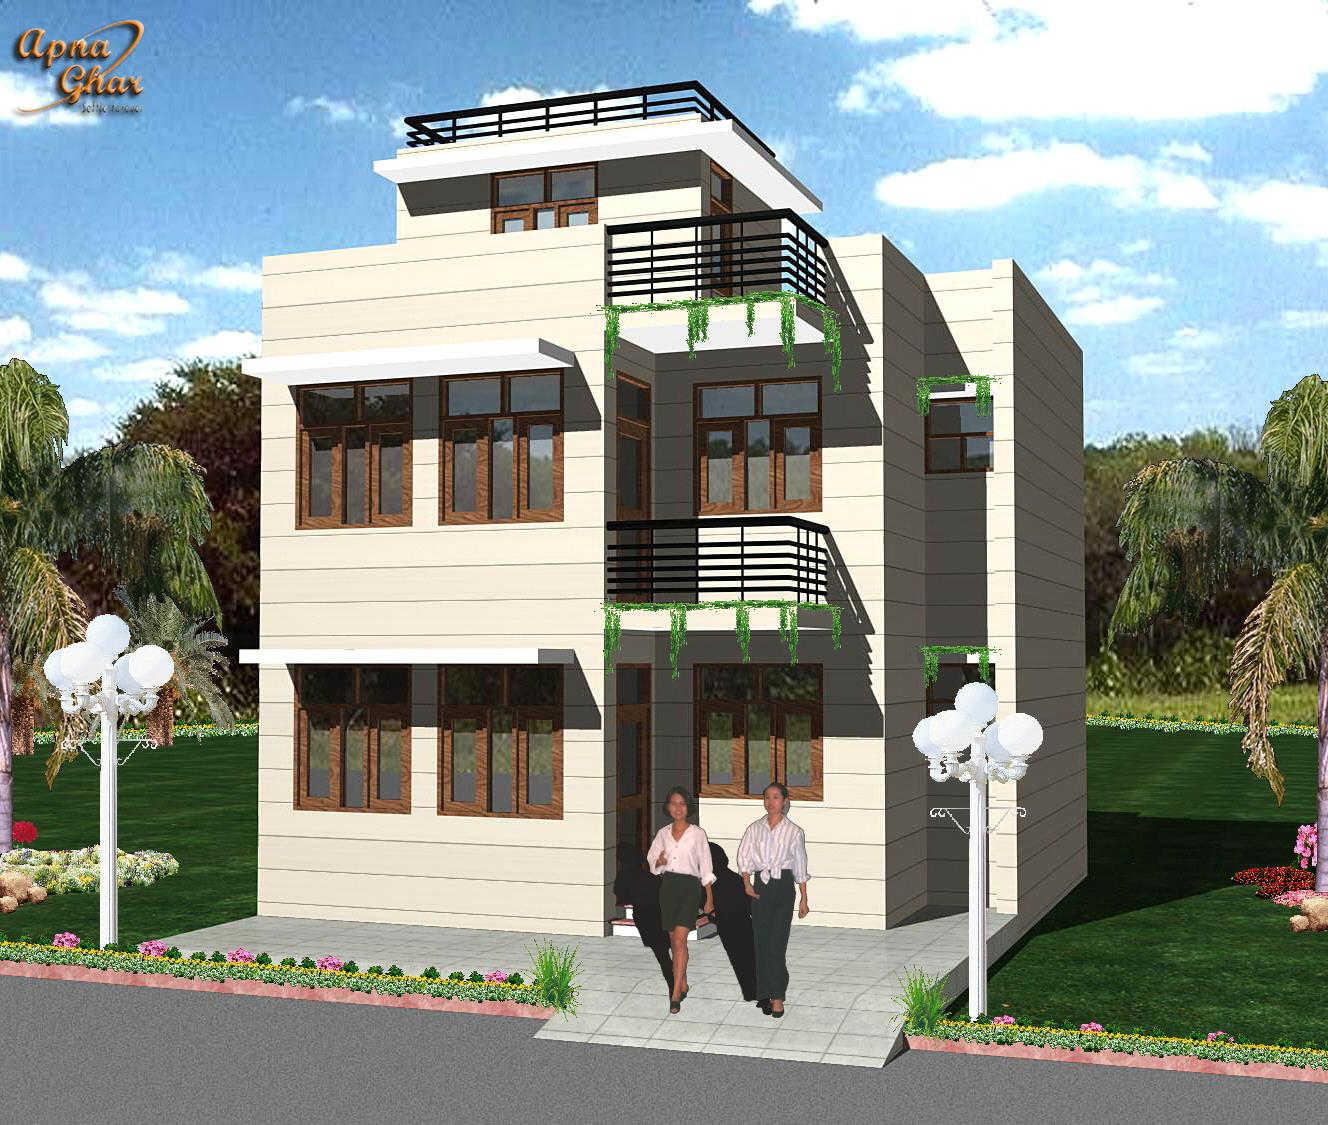 Front Elevation For 2 Floor Building : Exterior elevation of floor house gharexpert